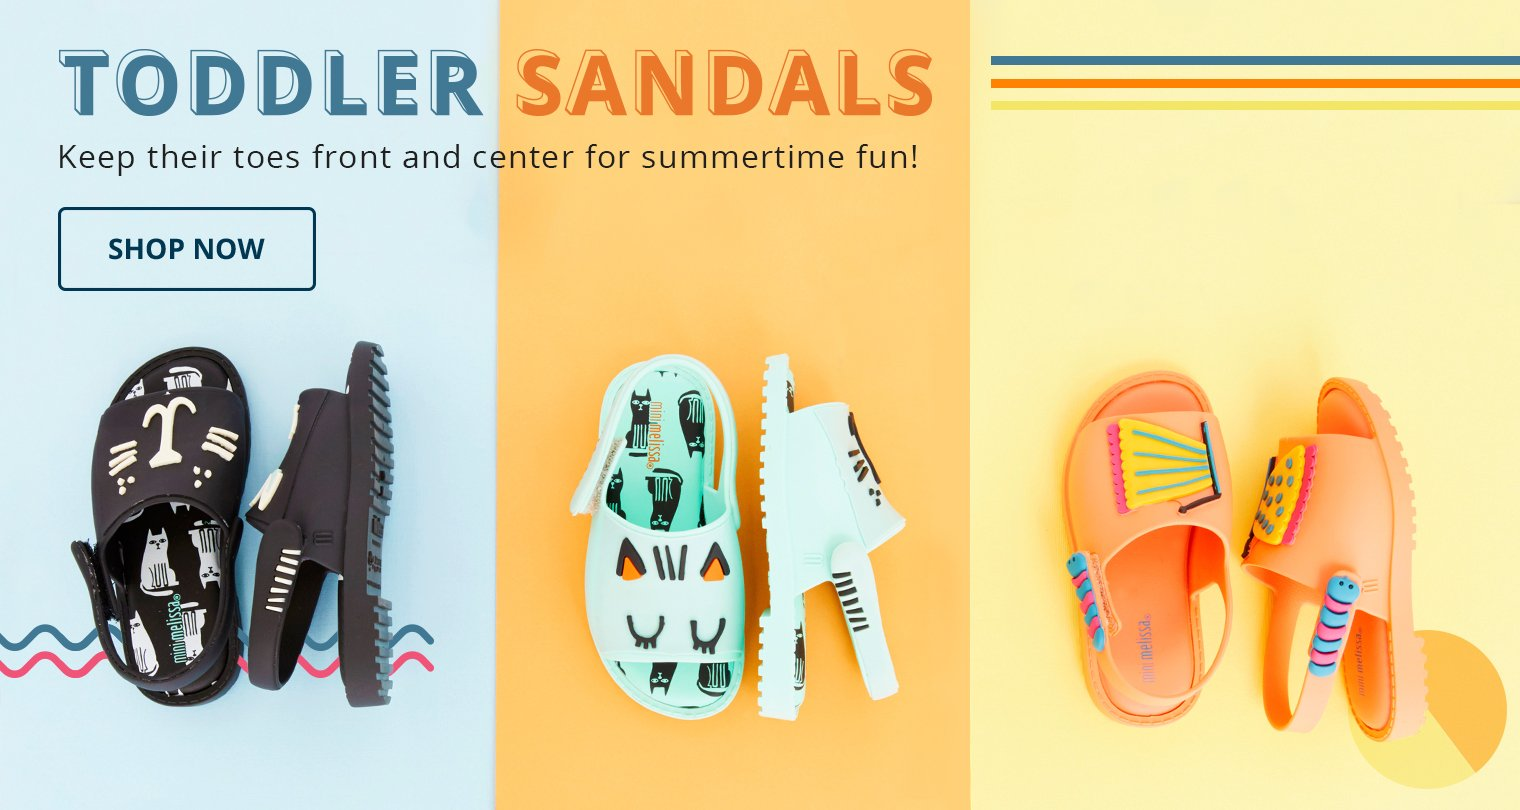 Toddler Sandals. Keep their toes front and center for summertime fun! Shop Now.